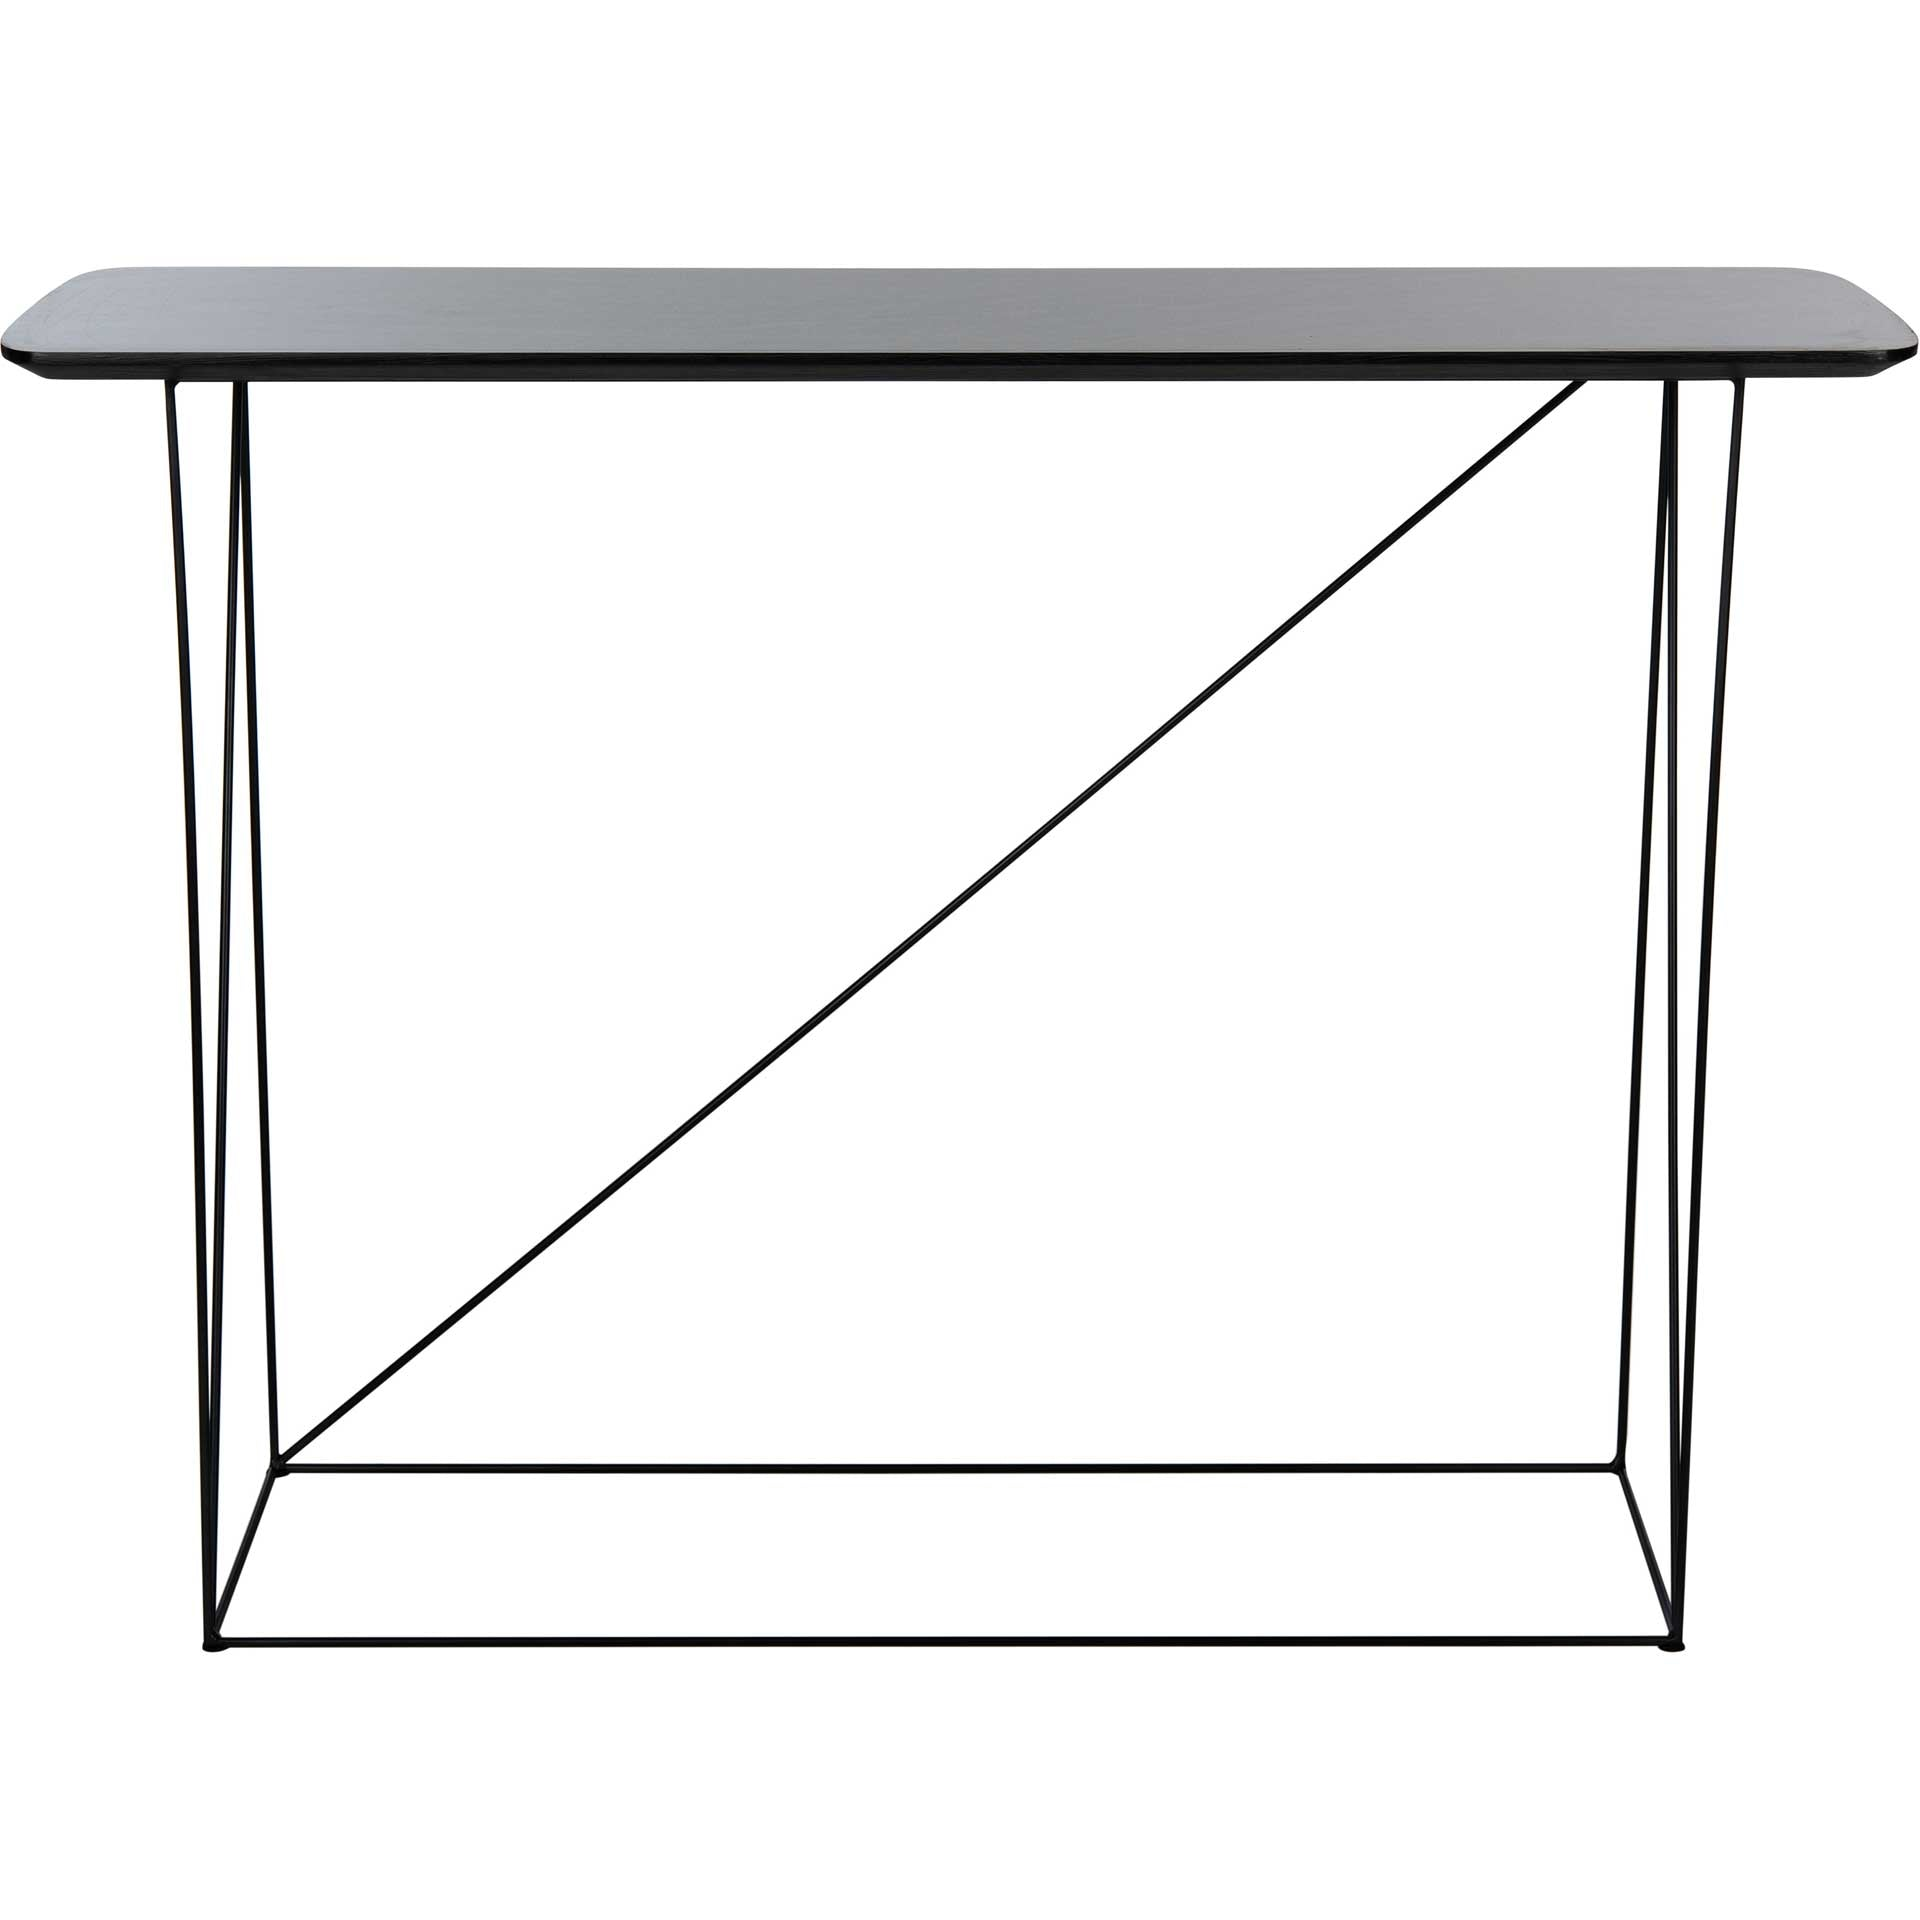 Ryder Console Table Gray/Black